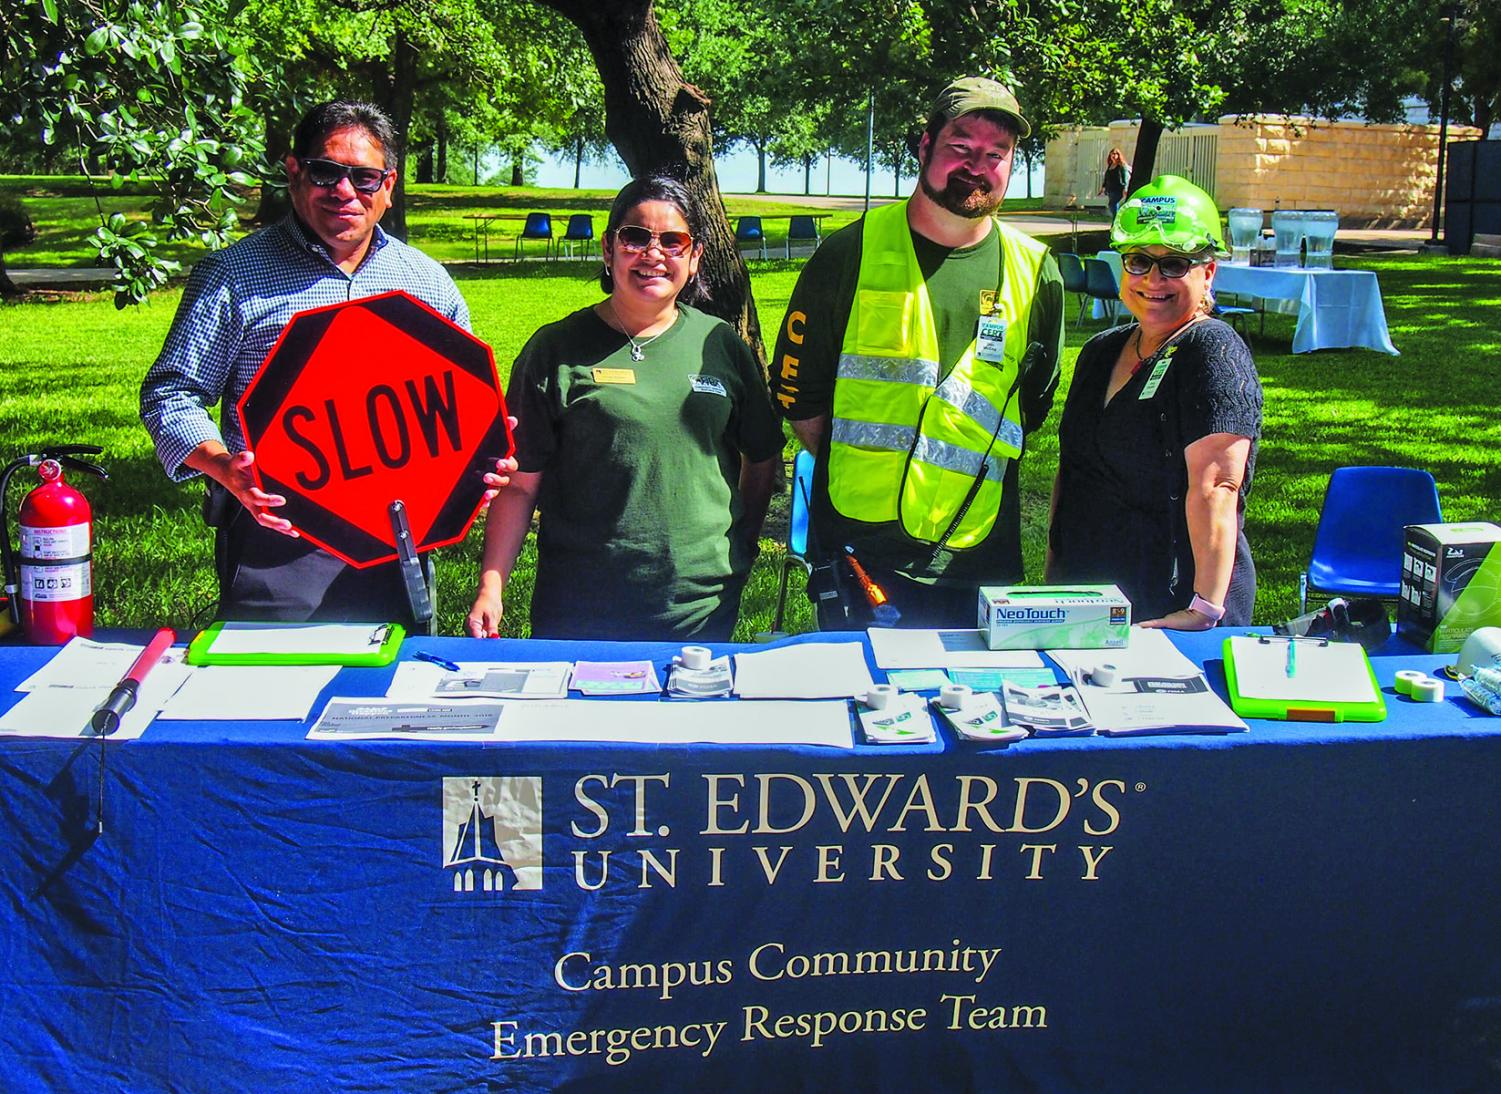 The safety fair addressed issues of disaster preparedness, fire safety and many others.